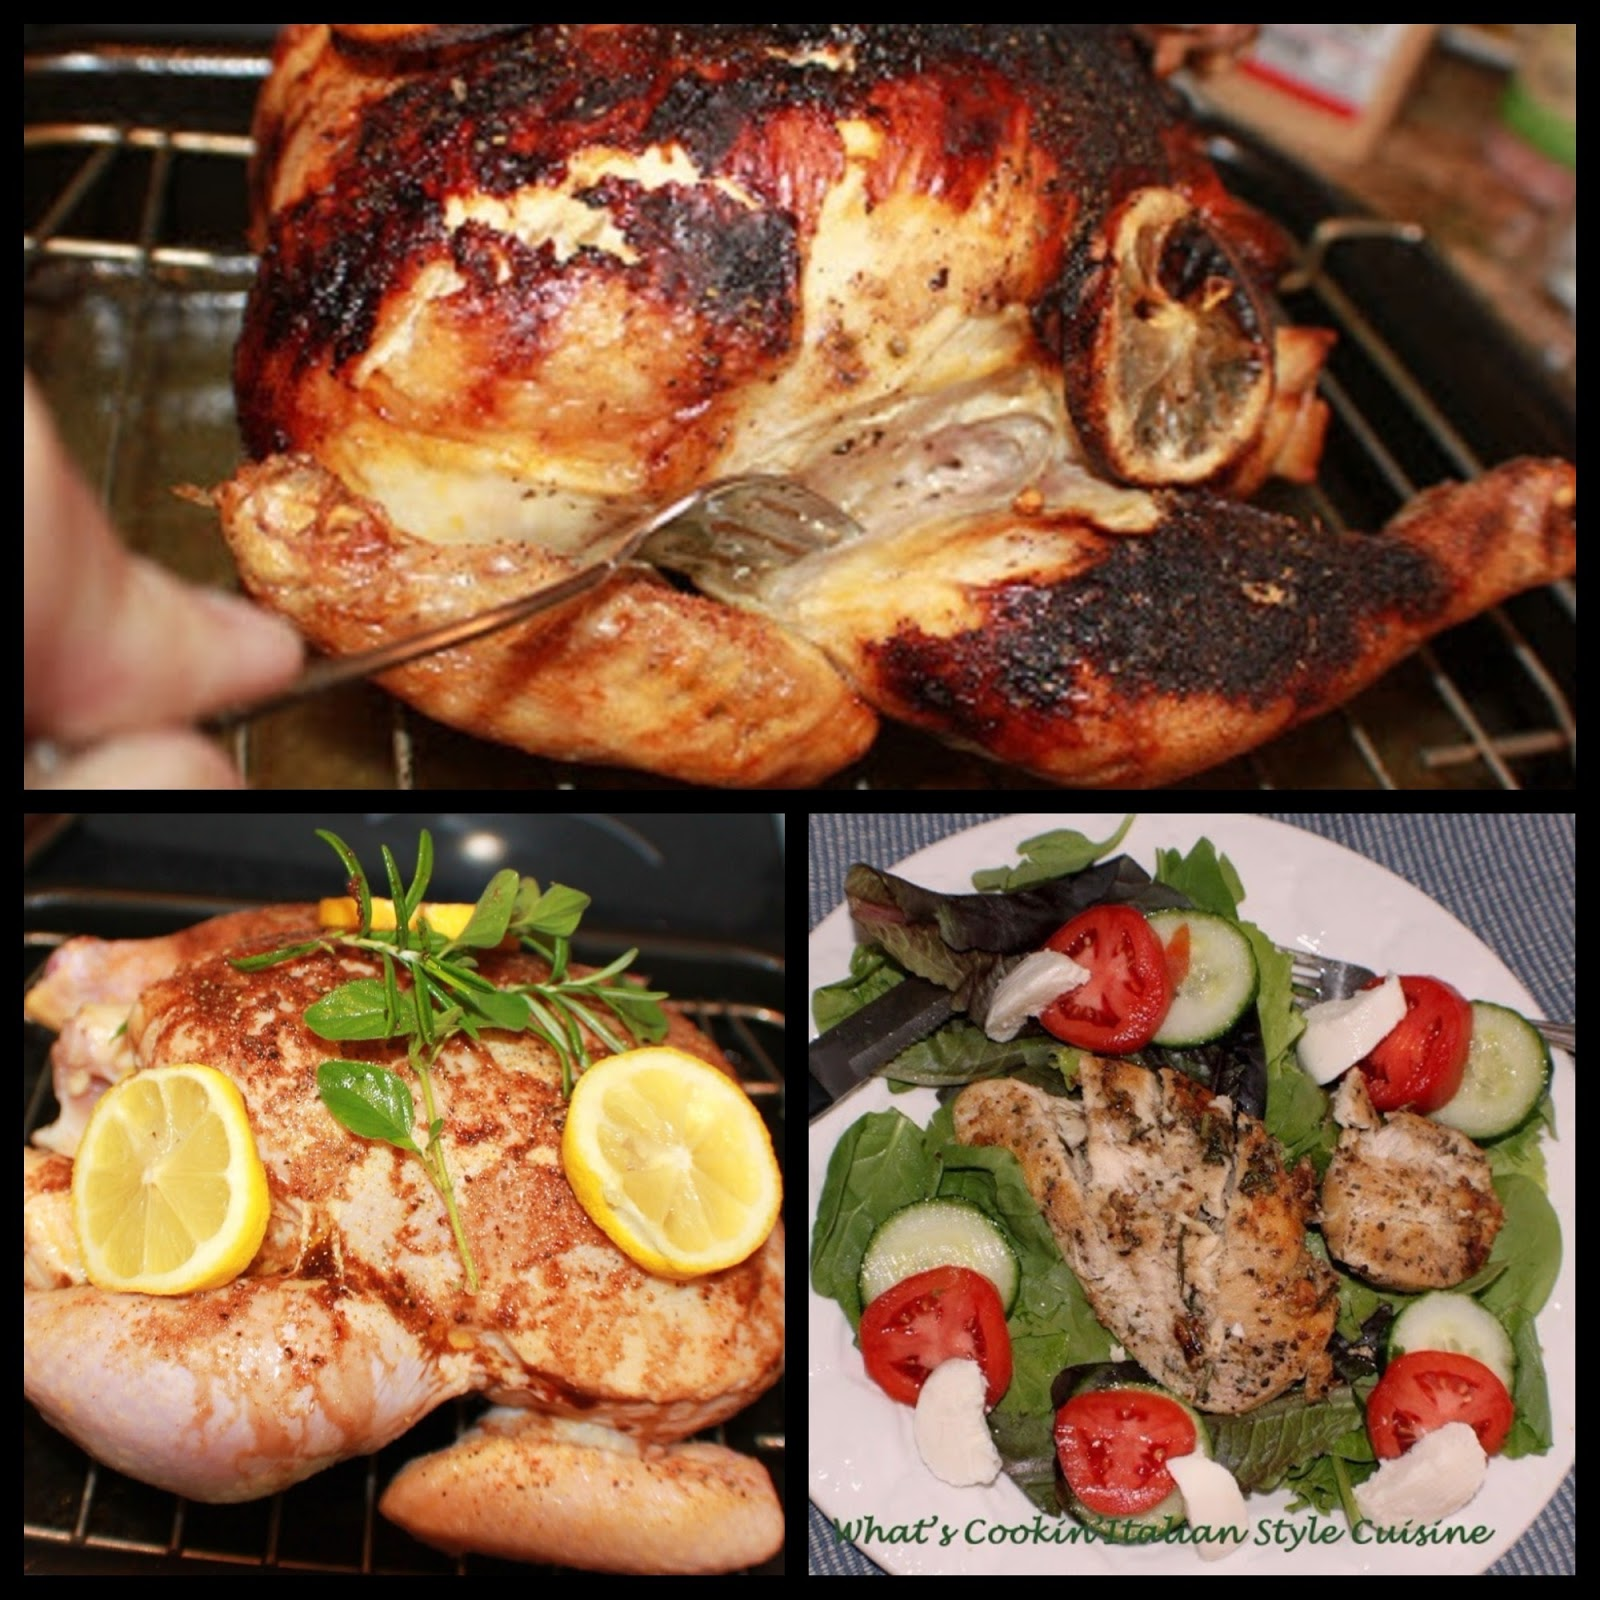 Lemon and Herb chicken is a juicy chicken filled with lemon and herbs flavors in a roasting pan with fresh lemon on it and fork tender